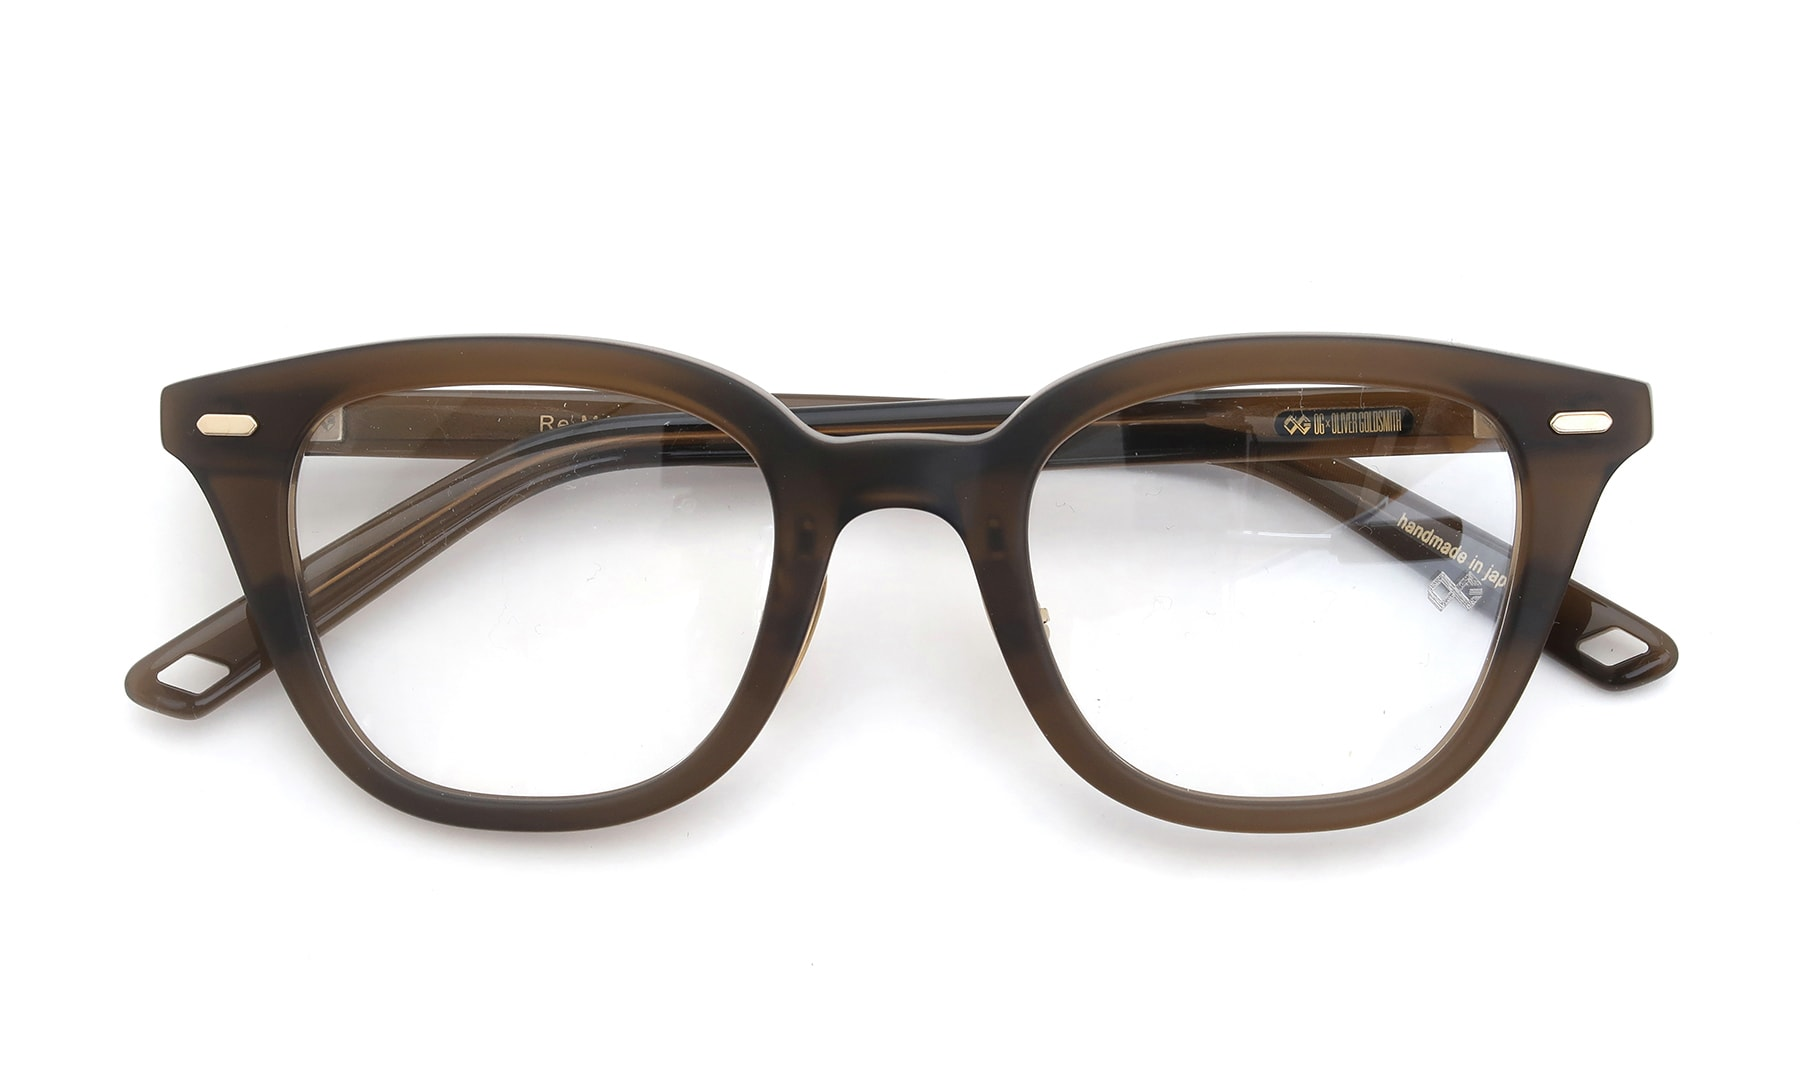 OG × OLIVER GOLDSMITH Re:MAY 46 リ:メイ 4